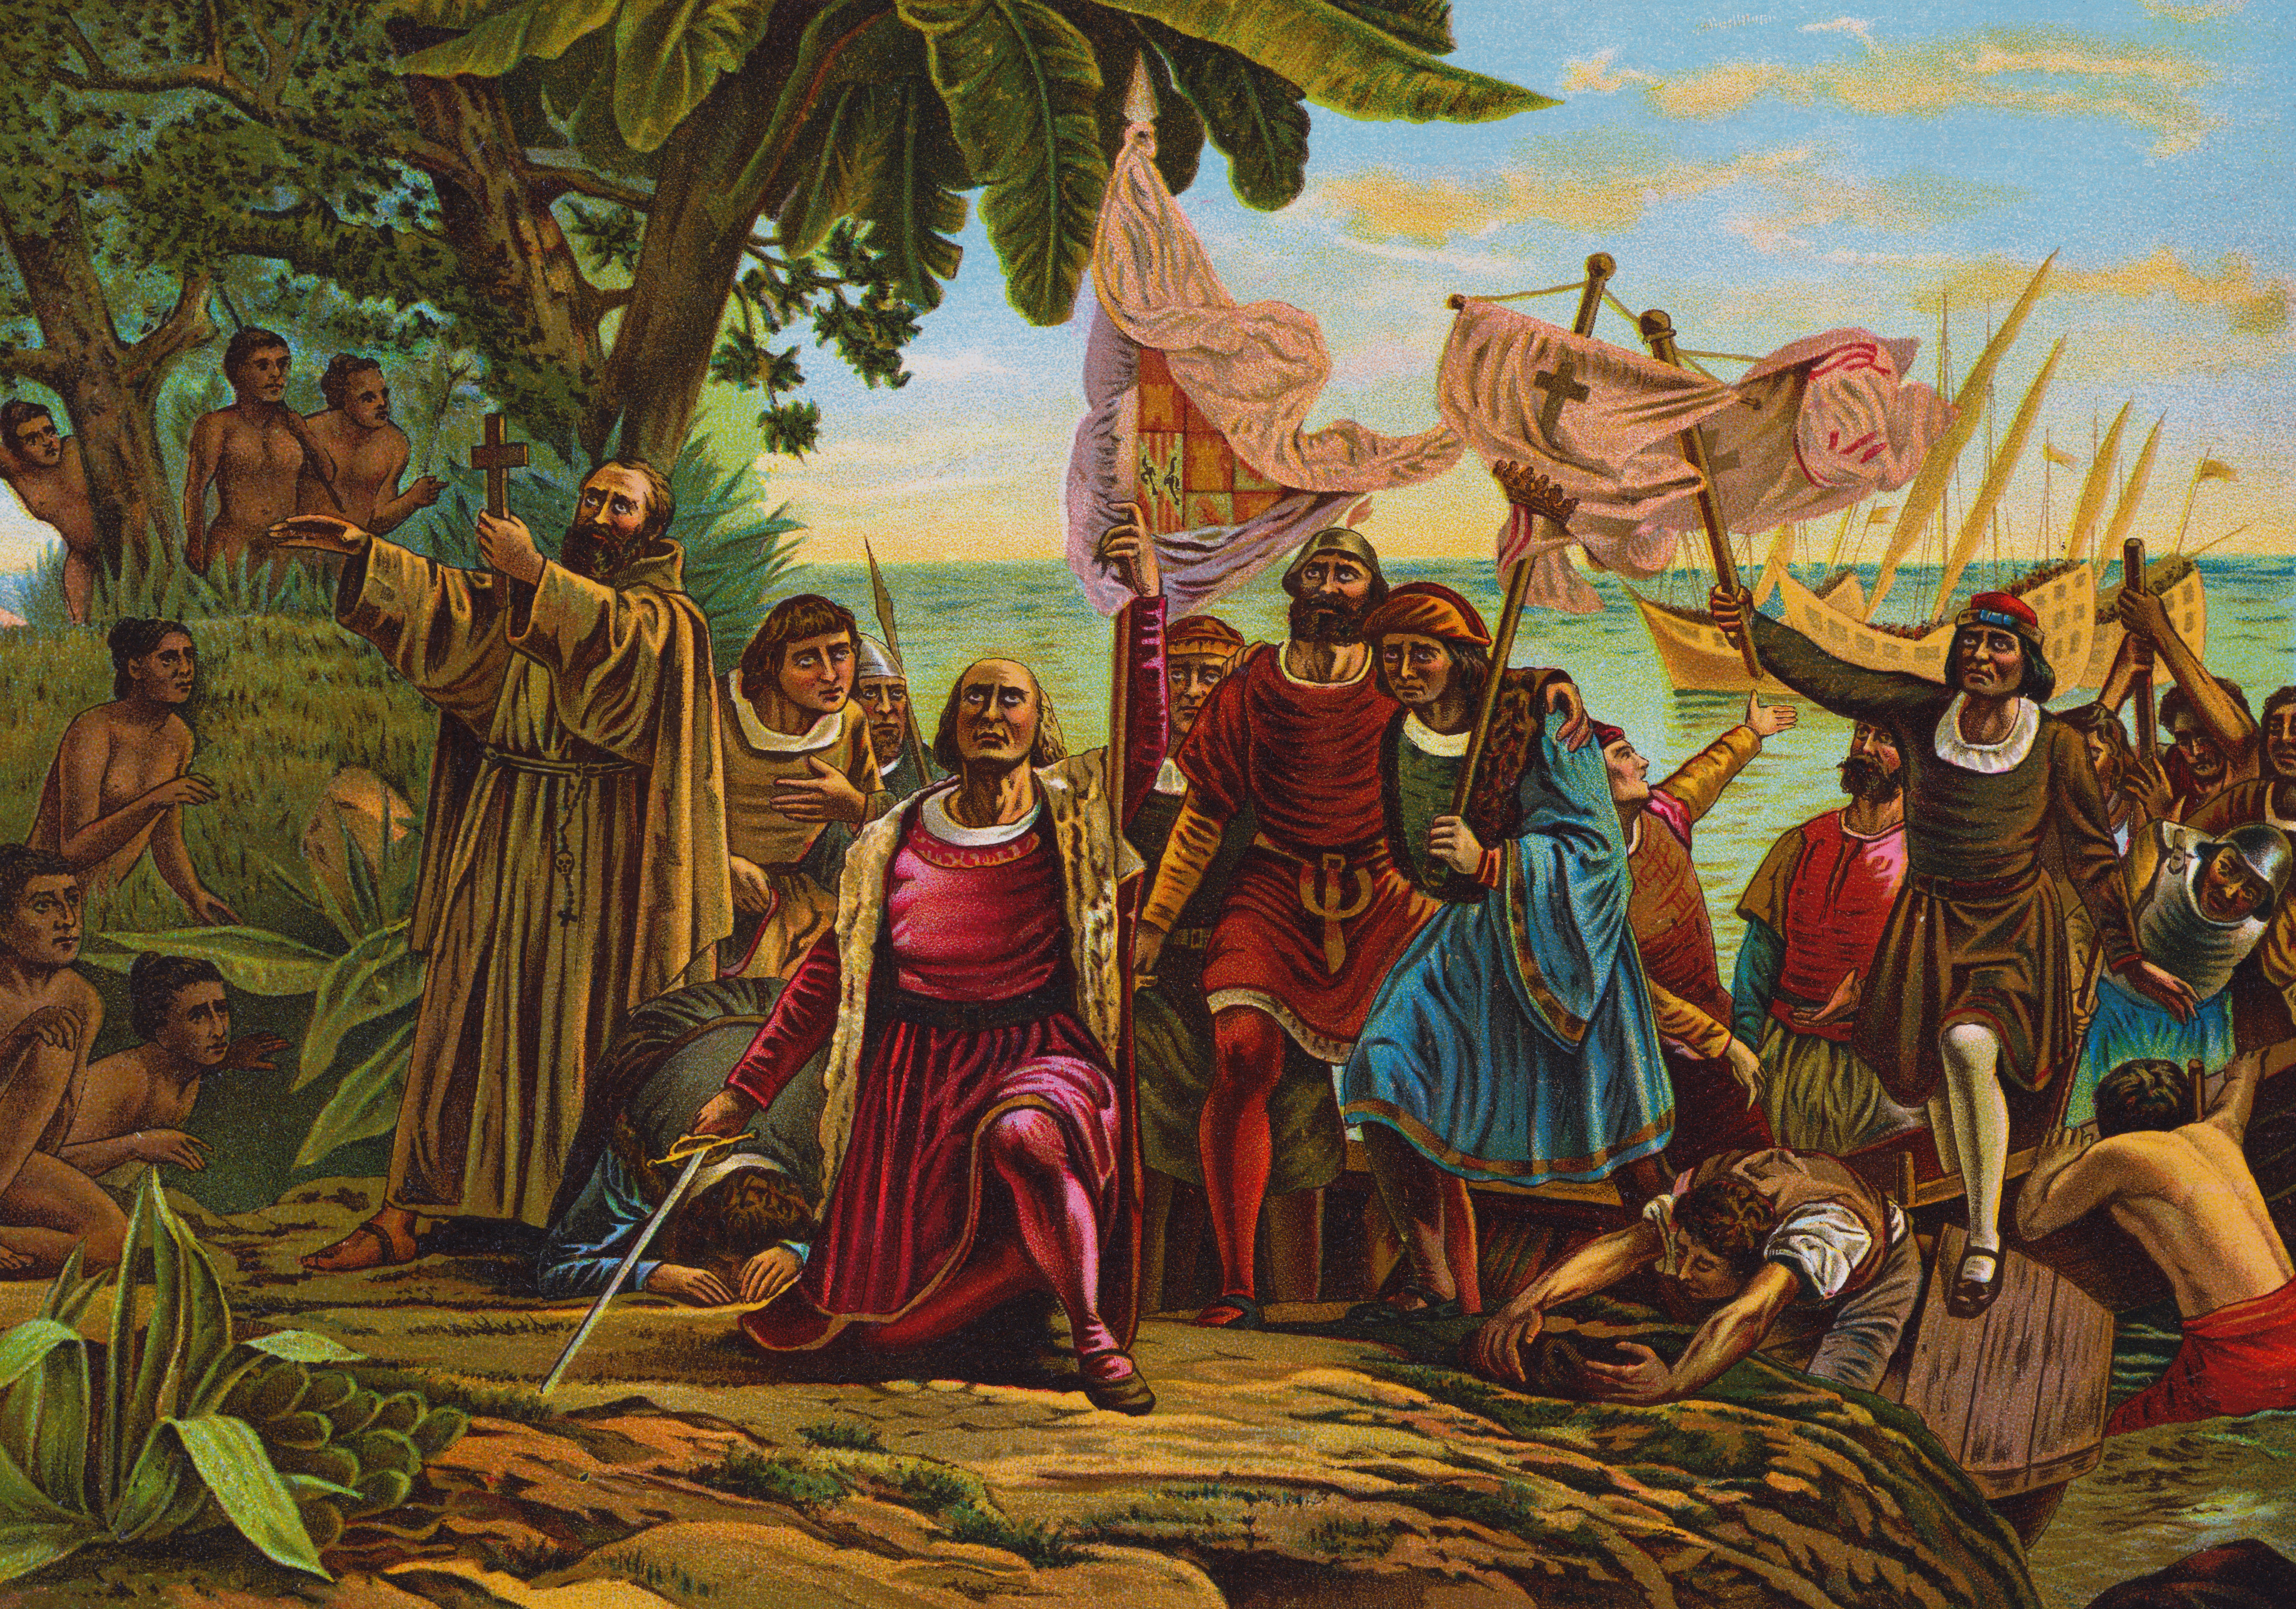 the planned discovery of christopher columbus on october 13th 1492 On august 3, 1492, columbus set sail from spain to find an all-water route to asia on october 12, more than two months later, columbus landed on an island in the bahamas that he called san salvador the natives called it guanahani.